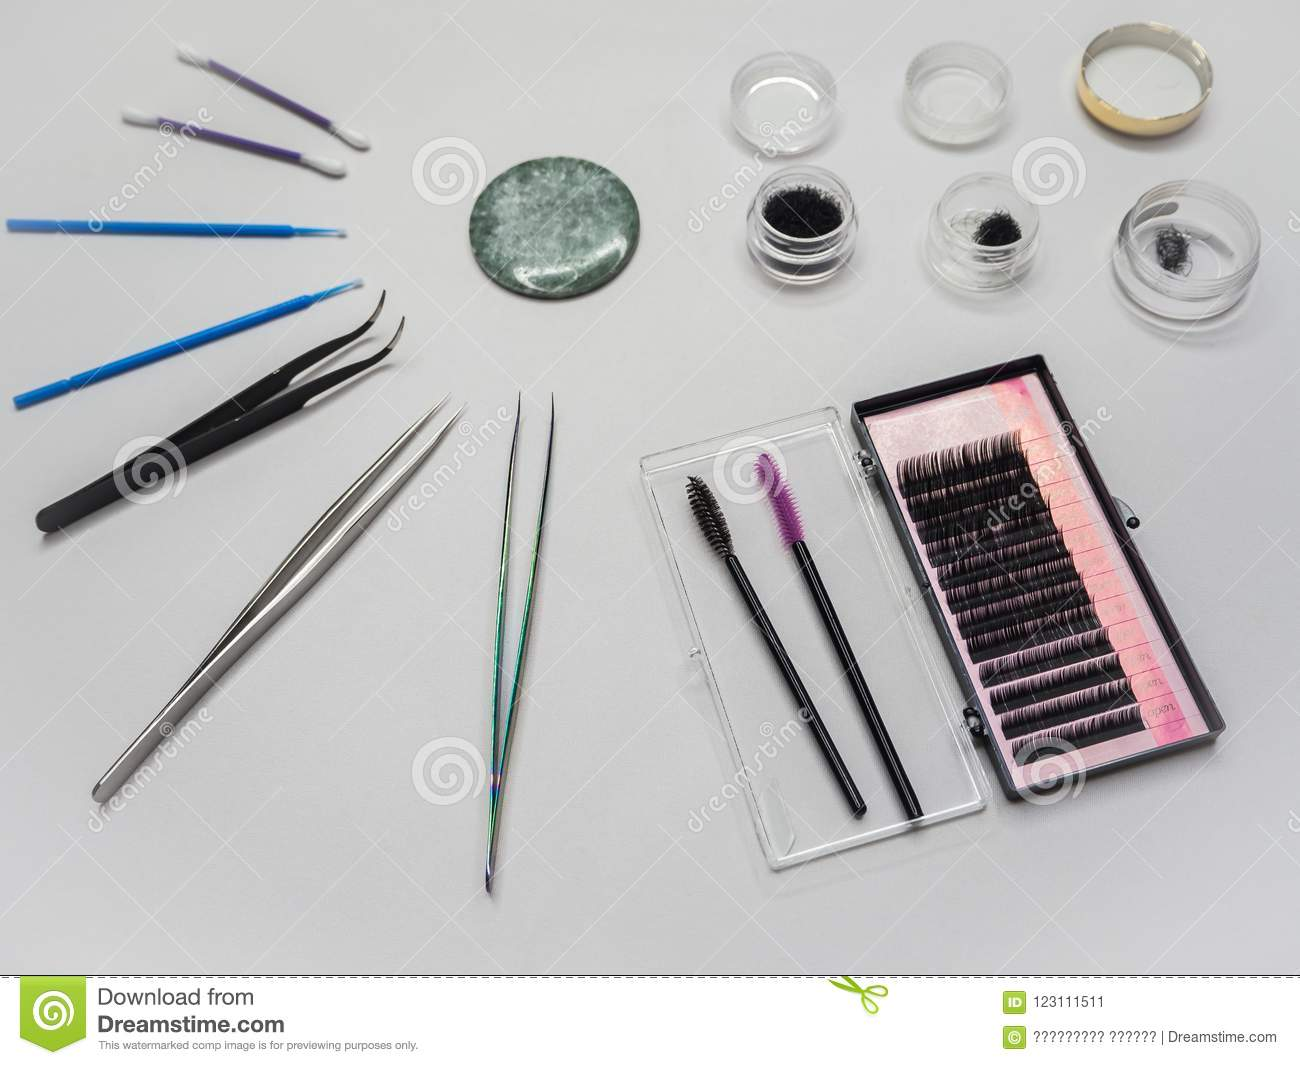 The Eyelash Extension Tools Are Laid Out On The Table Stock Image